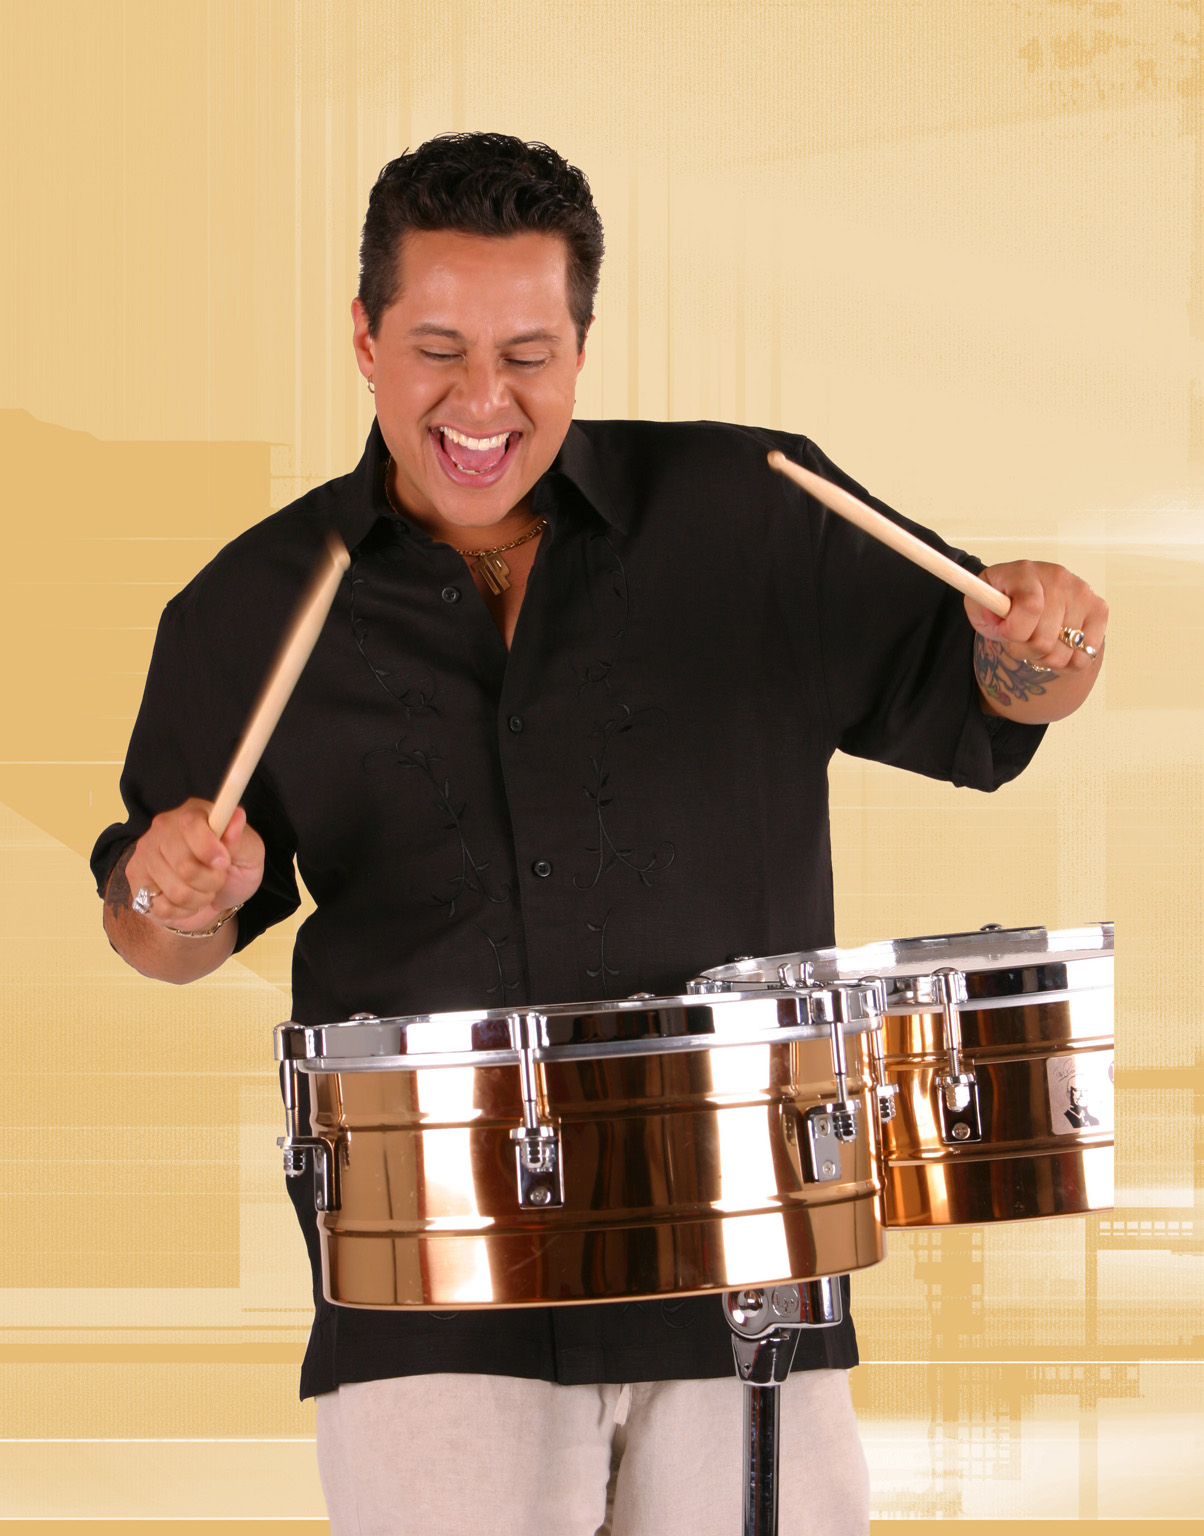 tito puentes Buy tito puente jr tickets from the official ticketmastercom site find tito puente jr tour schedule, concert details, reviews and photos.